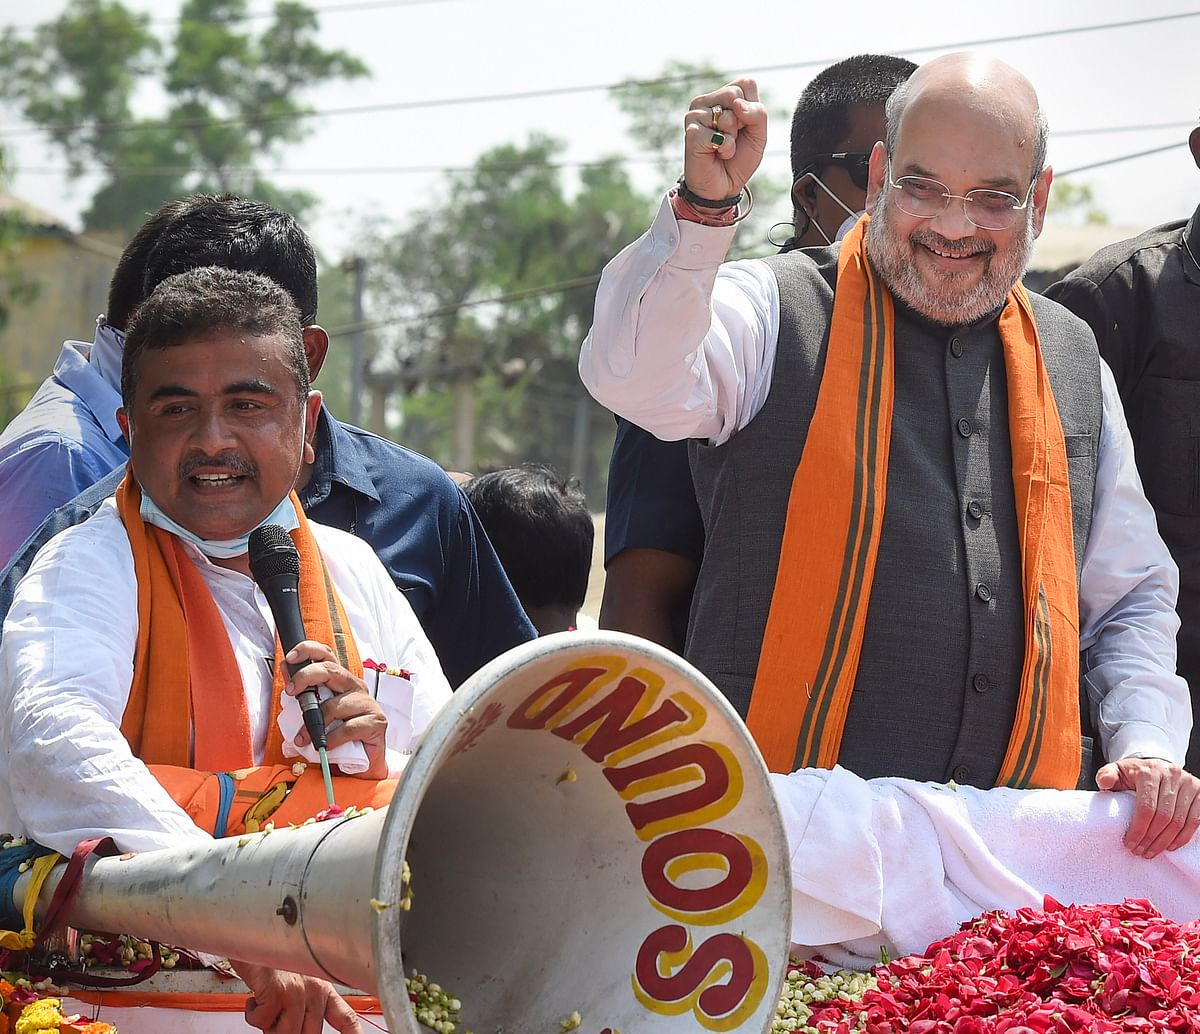 Union Home Minister Amit Shah during a road show in support of BJP candidate Suvendu Adhikari (L) from Nandigram Constituency for the Assembly elections, in Nandigram, Tuesday, March 30, 2021